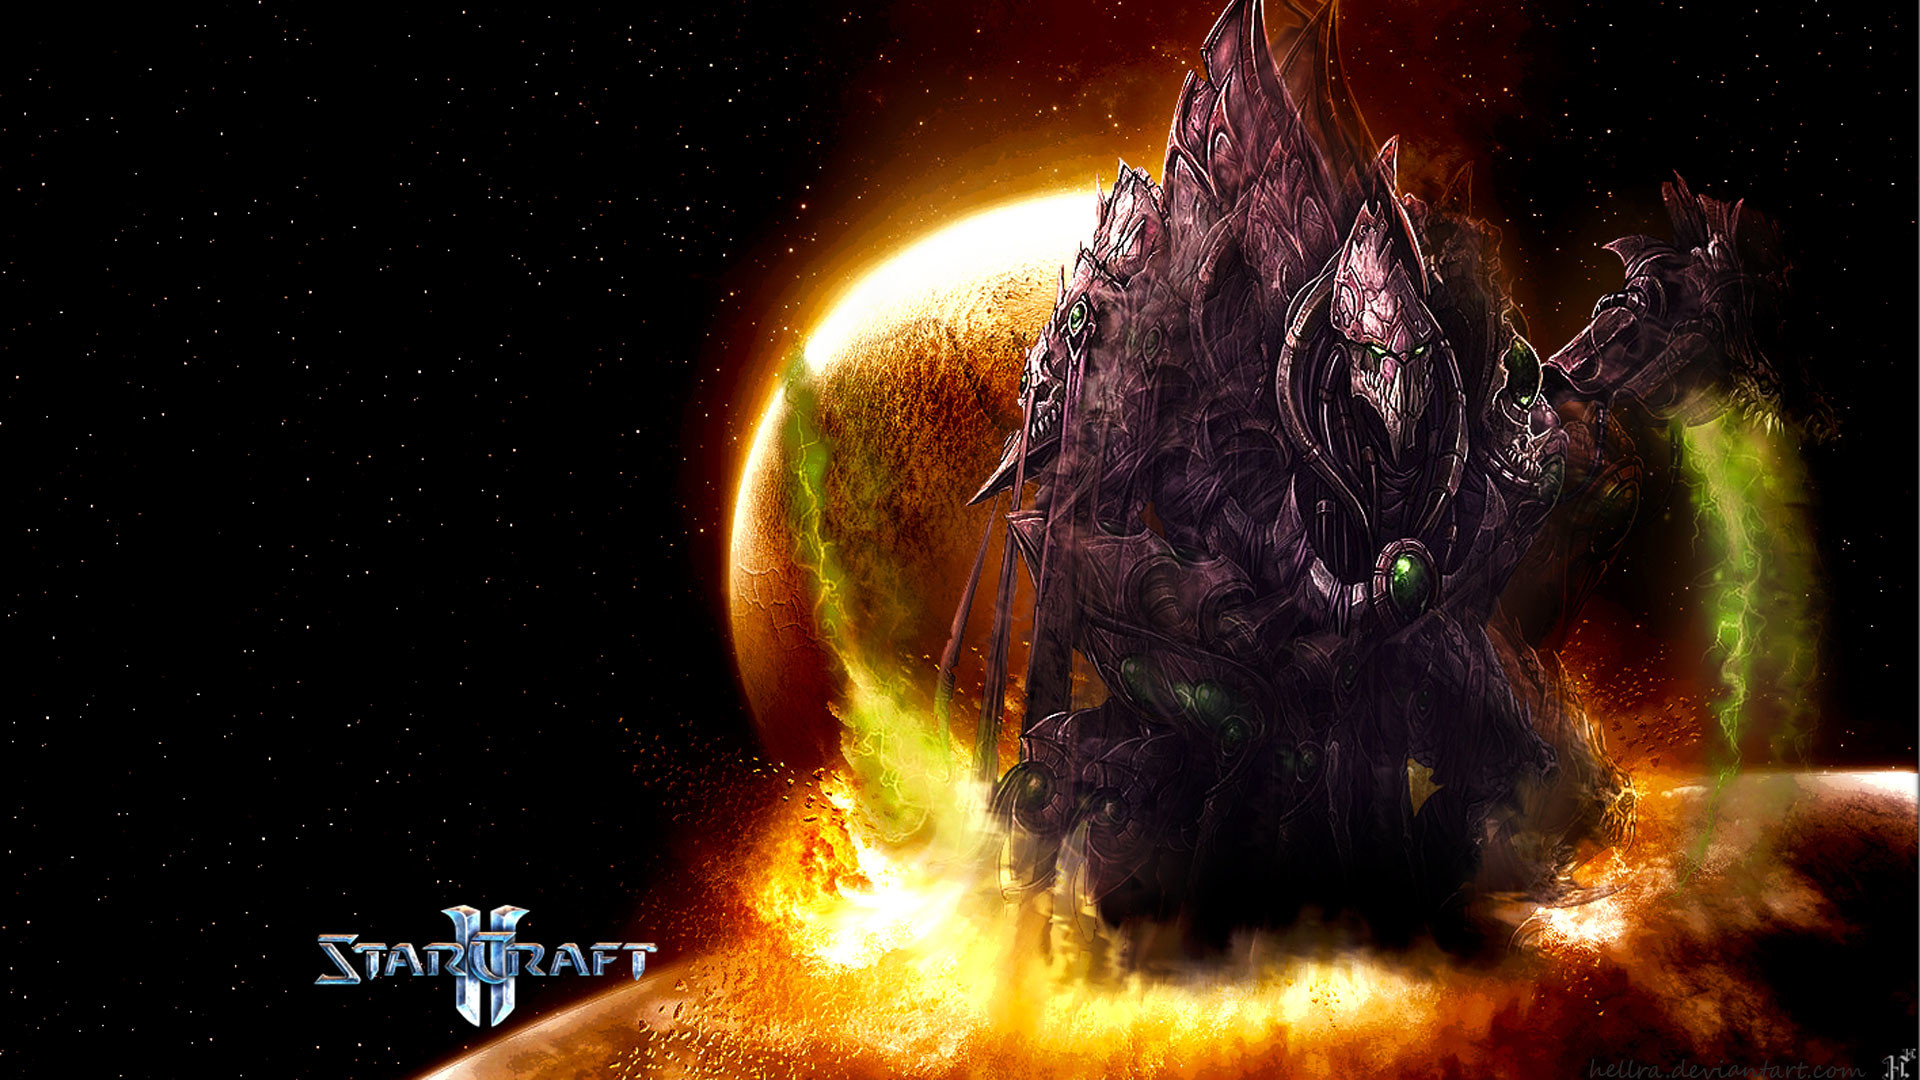 High Resolution Game Starcraft 2 Zerg Wallpapers HD 6 Full Size .